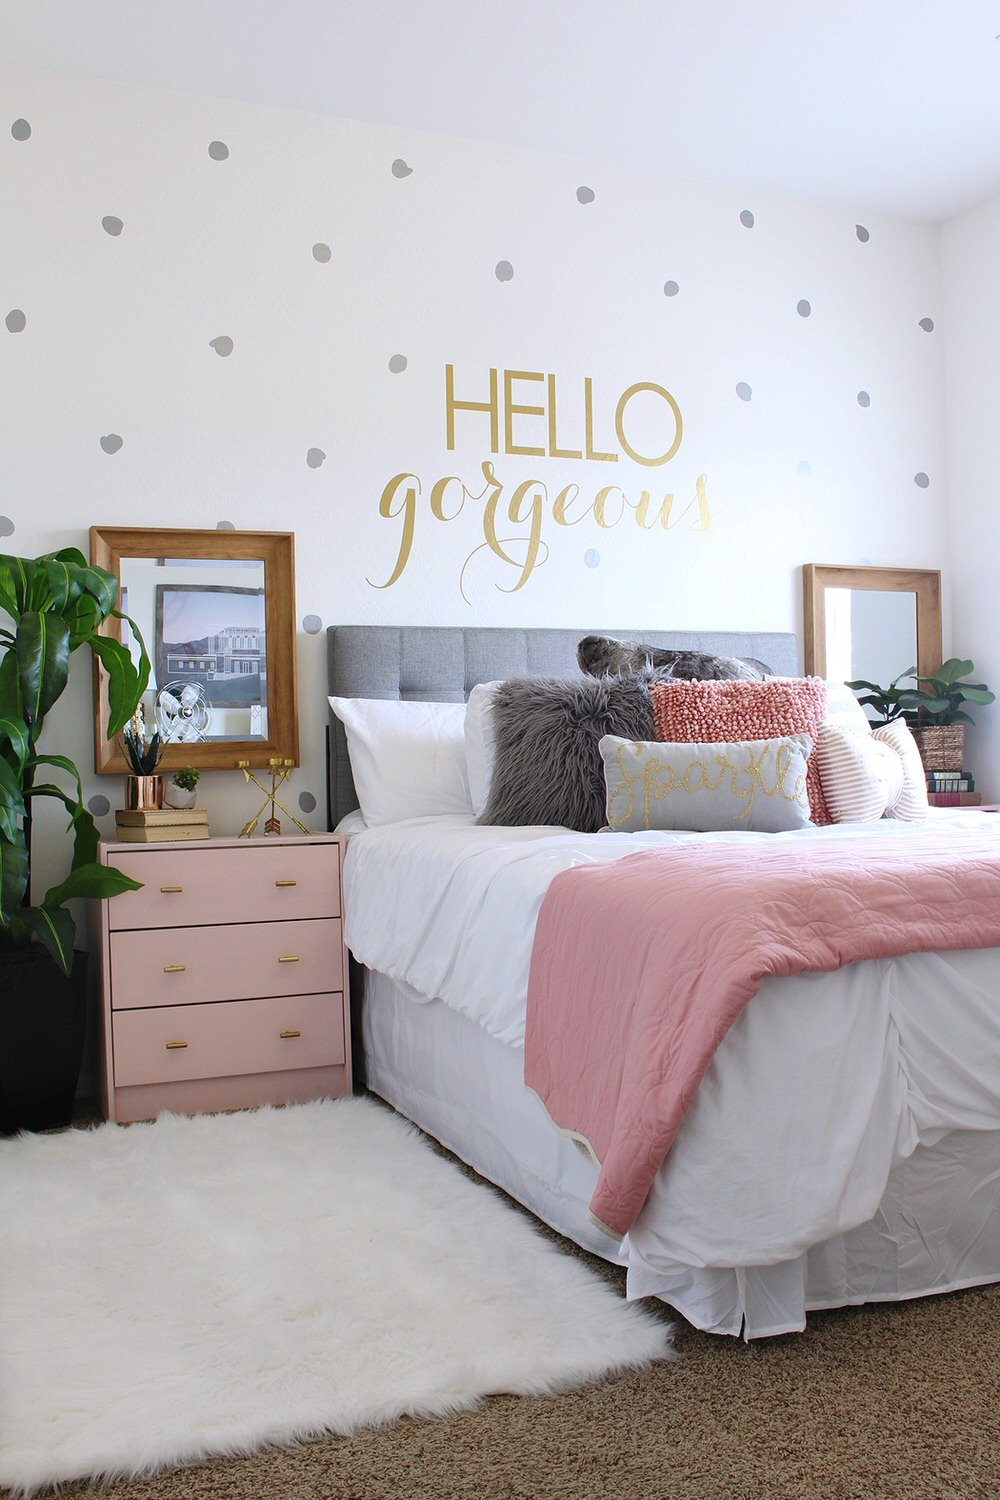 Teen Bedroom Decorating Tips, Tricks & Projects • The Budget ...